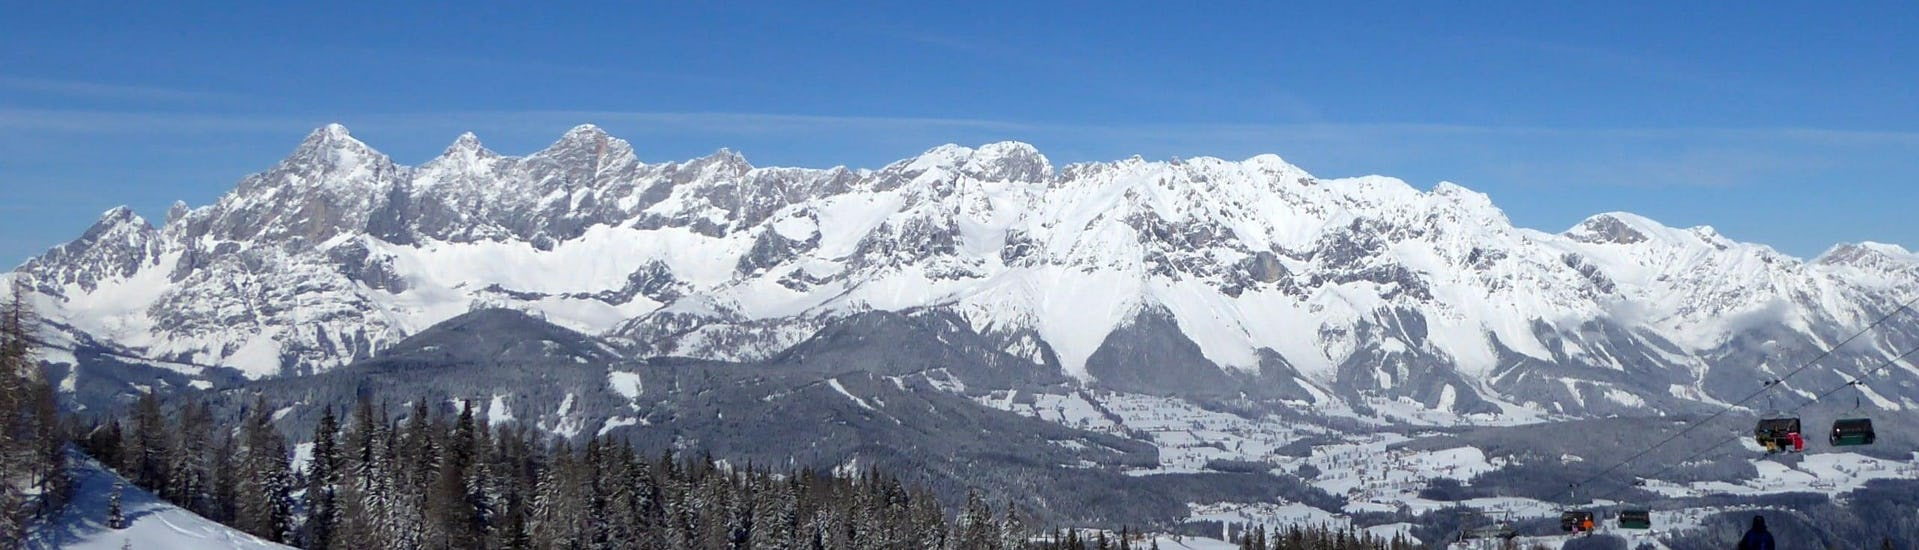 View over the sunny mountain landscape while learning to ski with the ski schools in Reiteralm.